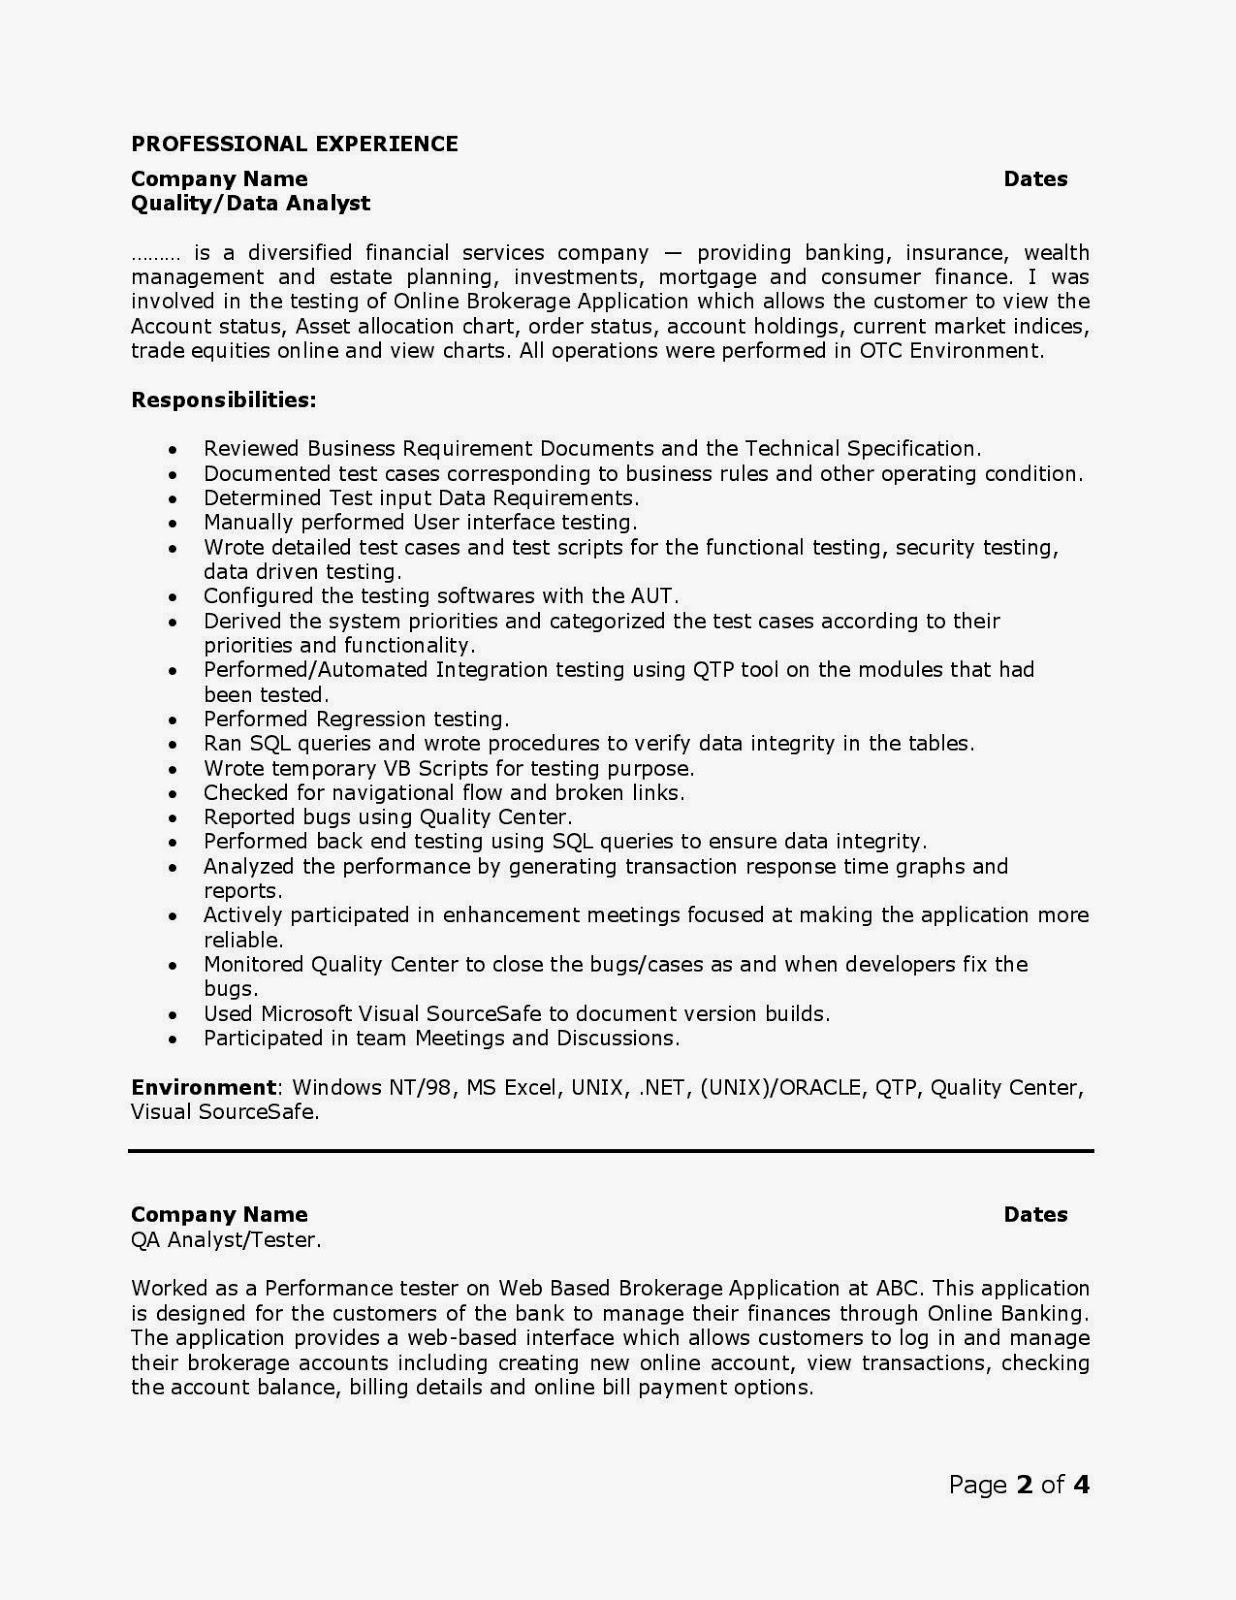 qa resume - Ideal.vistalist.co